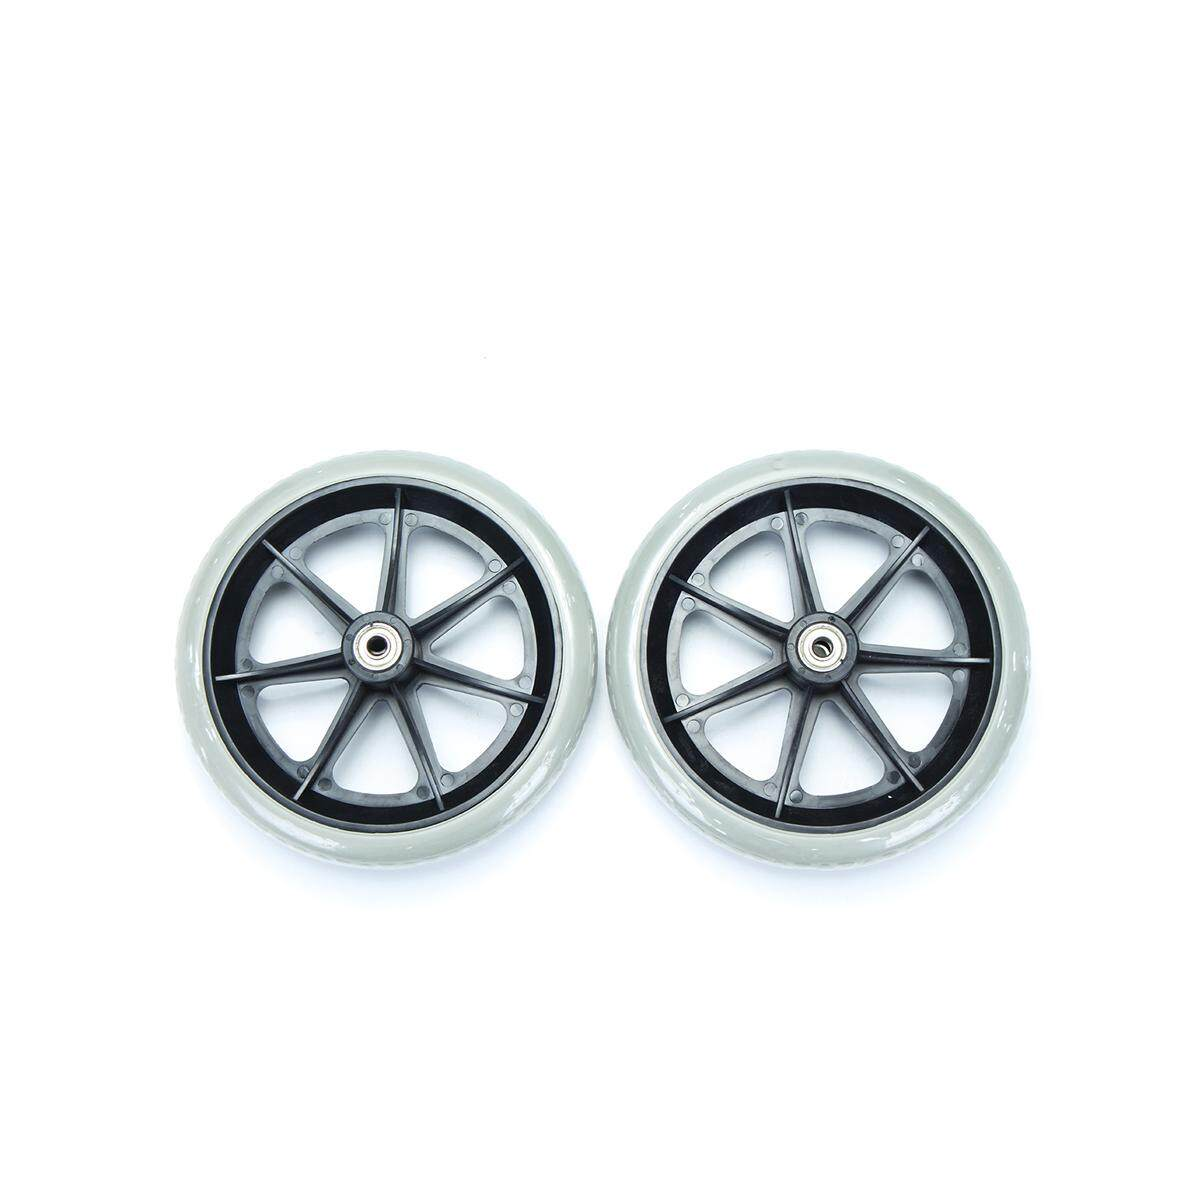 2pcs 6 Grey Rubber Small Non Marking Wheelchair Wheel Accessories By Ferry.